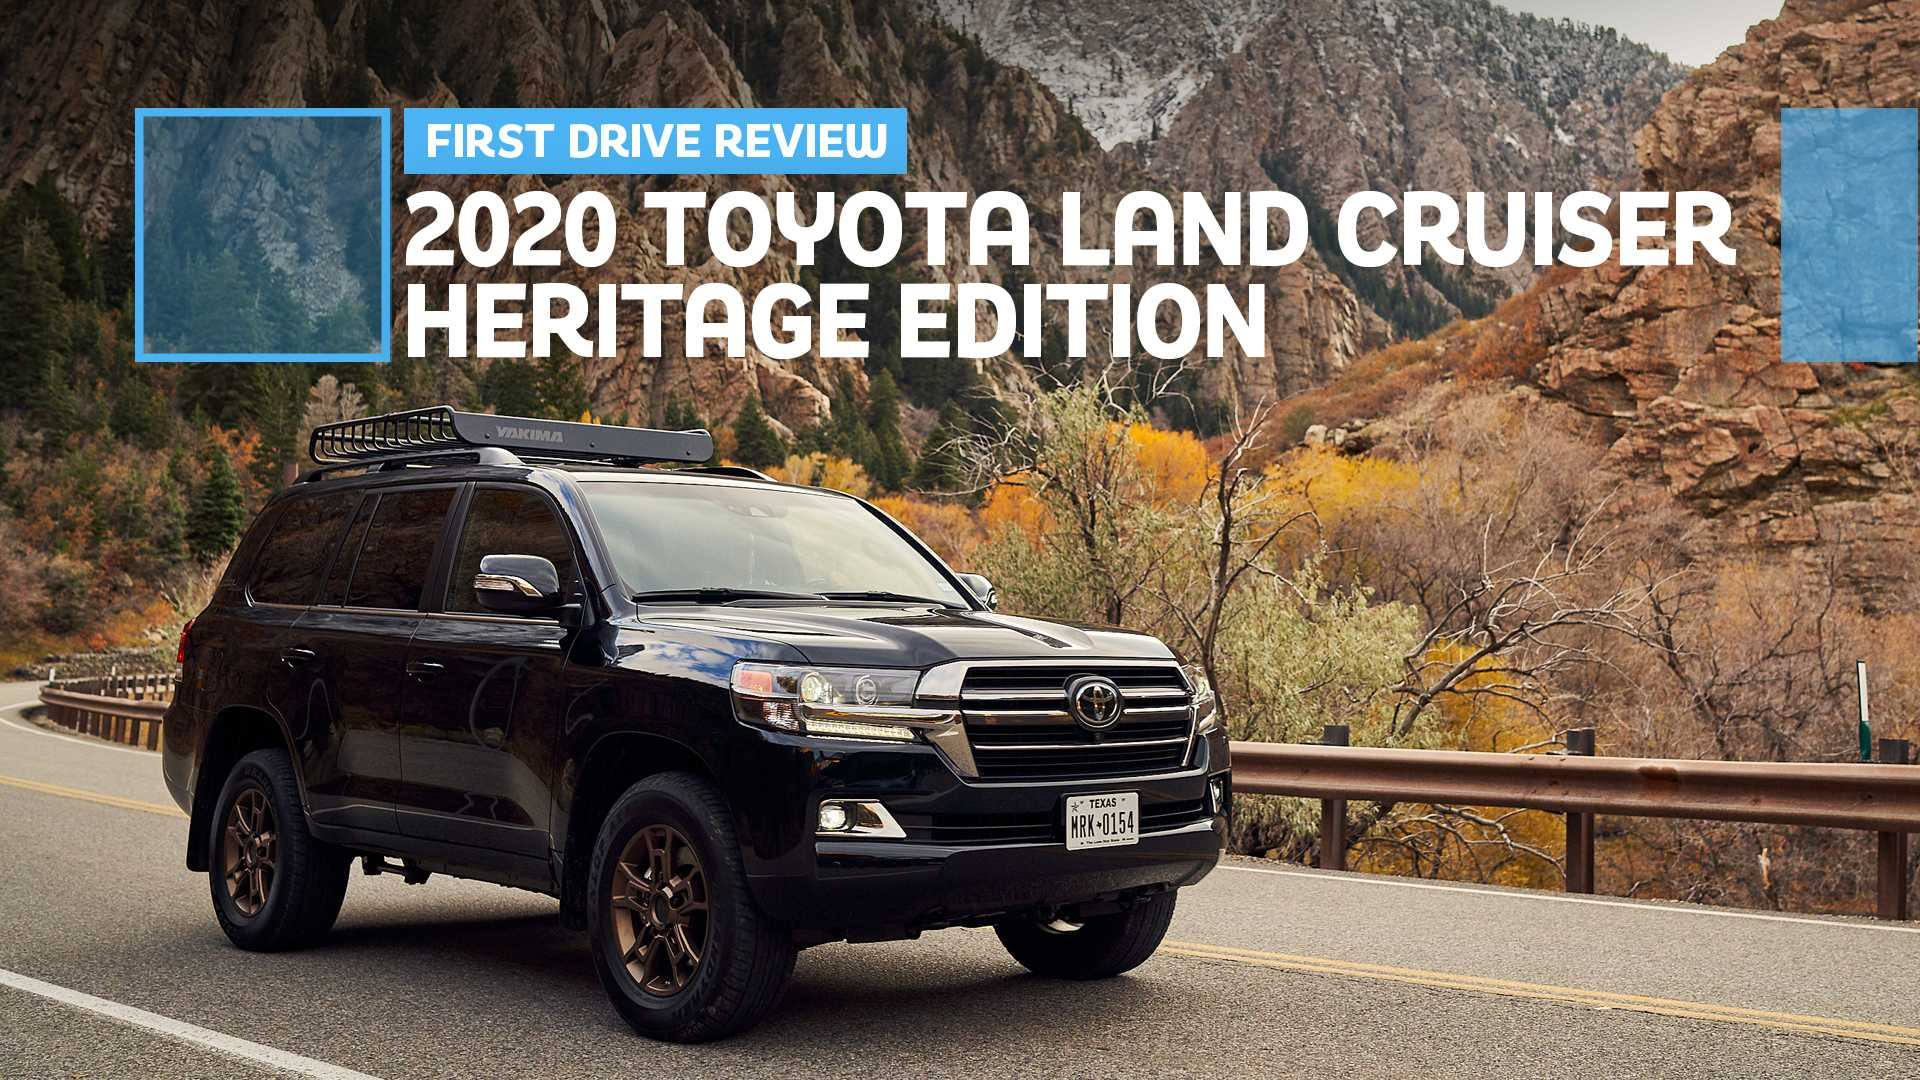 The all new 2020 Land Cruiser Reviewed